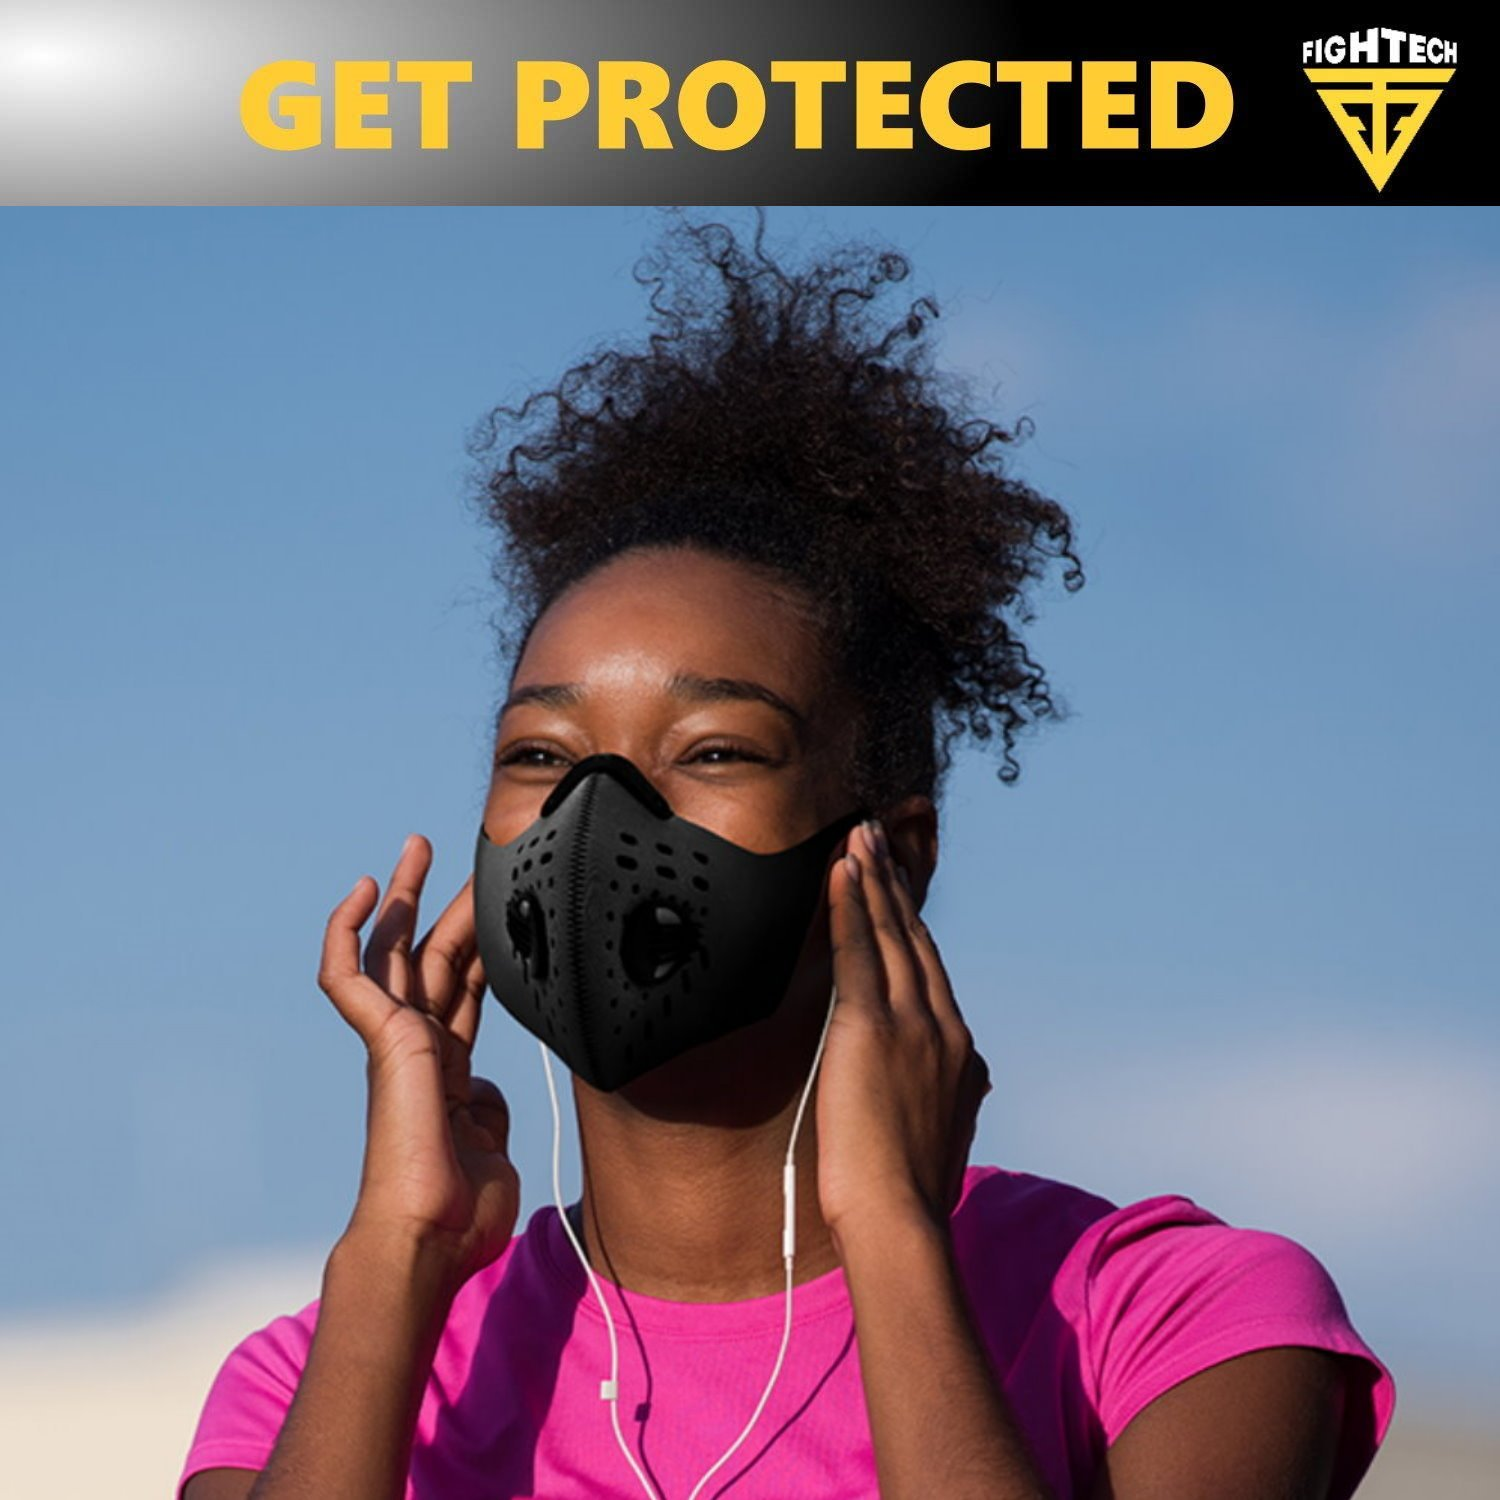 Anti-Pollution Dustproof/Dust Mask with 2 Valves and 4 Activated Carbon N99 Filters. Filtration of Exhaust Gas, Pollen Allergy and PM2.5. Cycling Face Mask for Outdoor Activities by FIGHTECH (BLK) by FIGHTECH (Image #8)